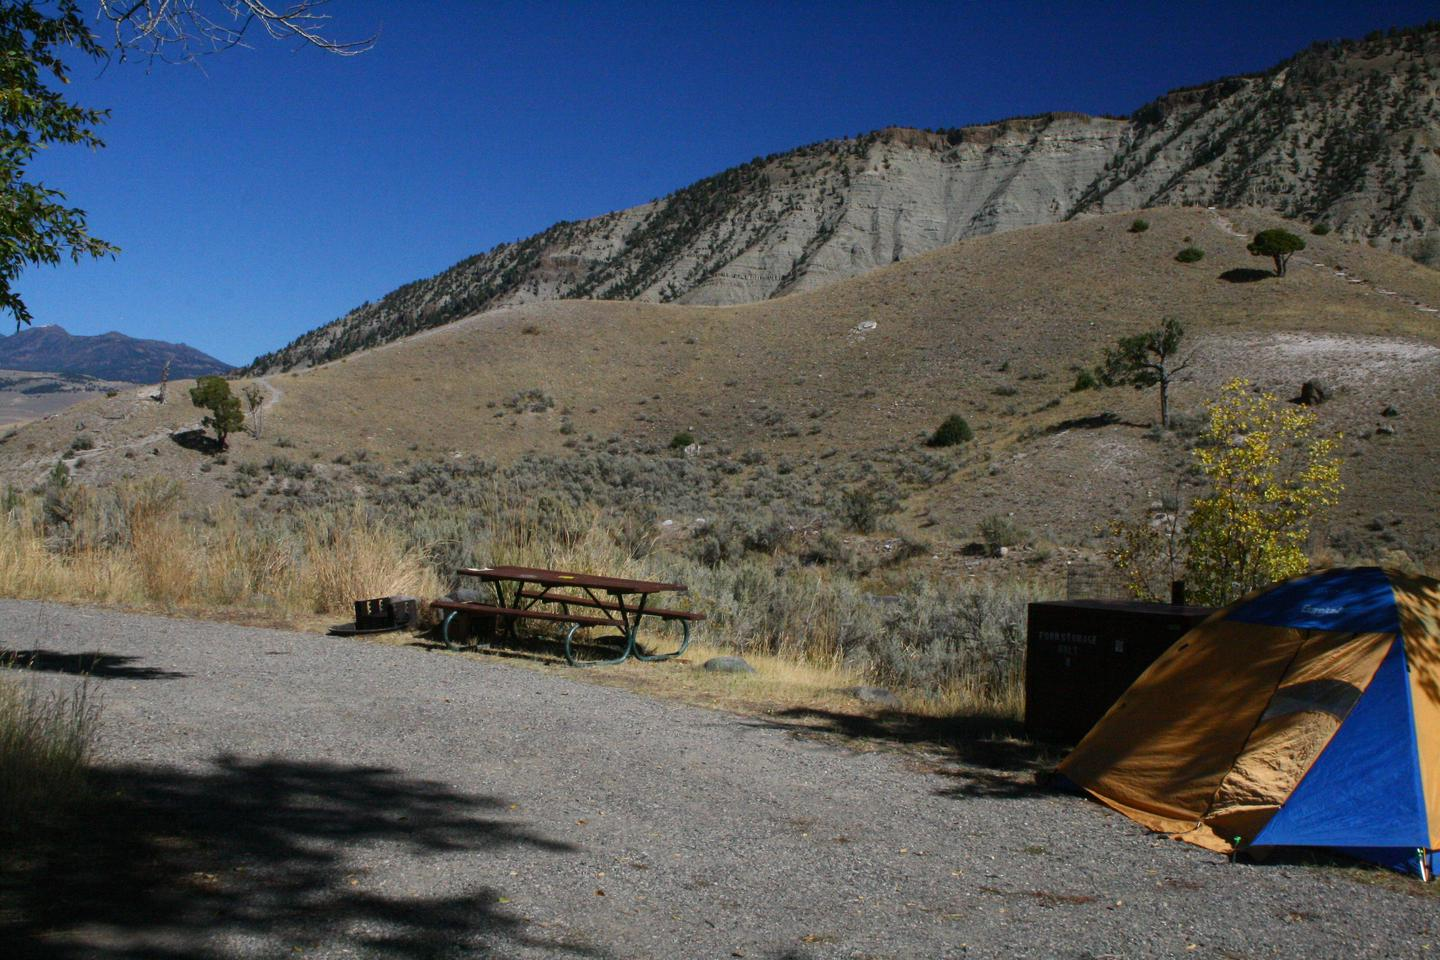 Mammoth Hot Springs Campground Site 8Mammoth Campsite #8